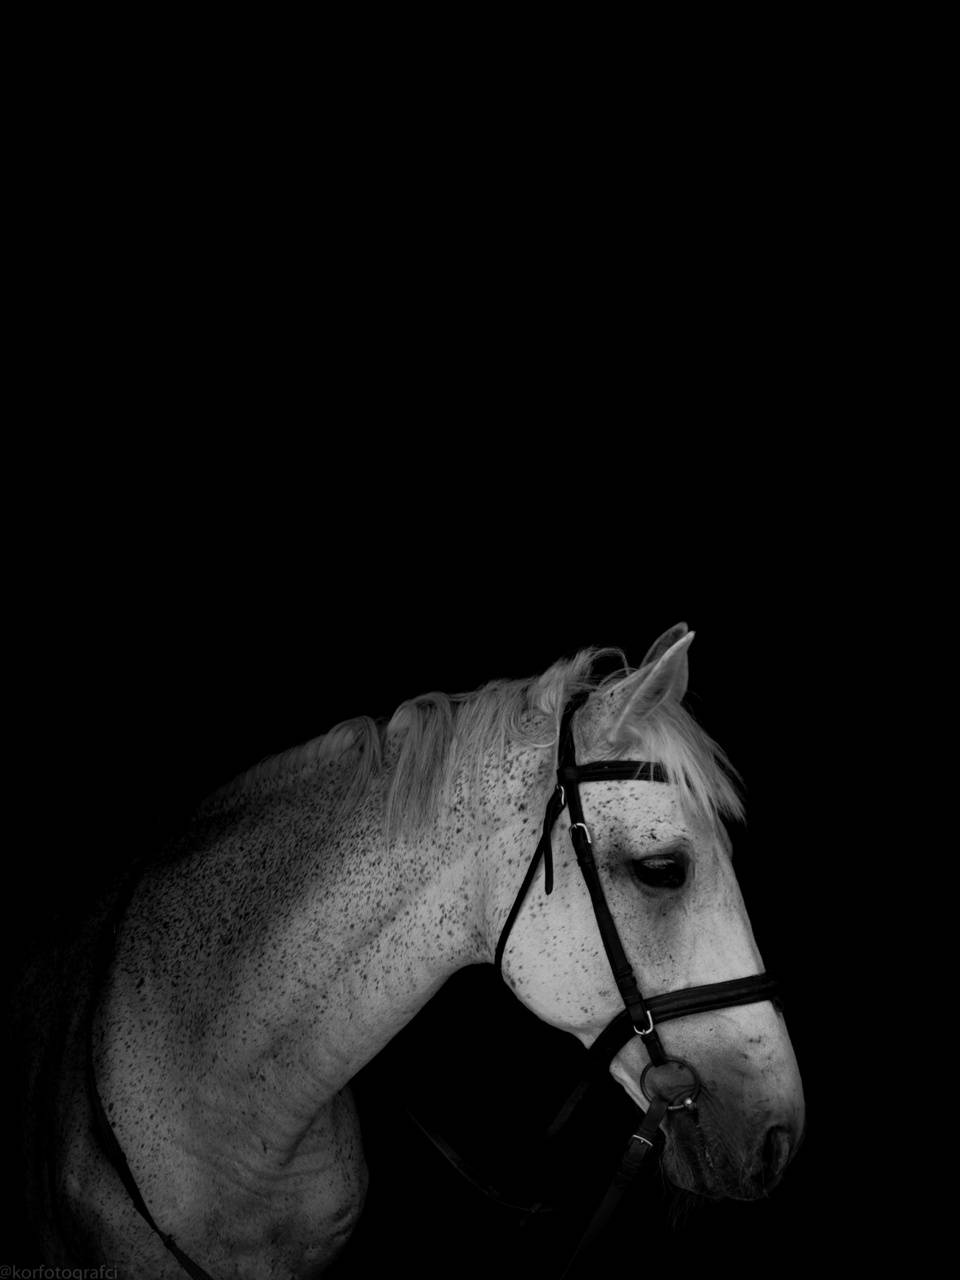 Horse in the black